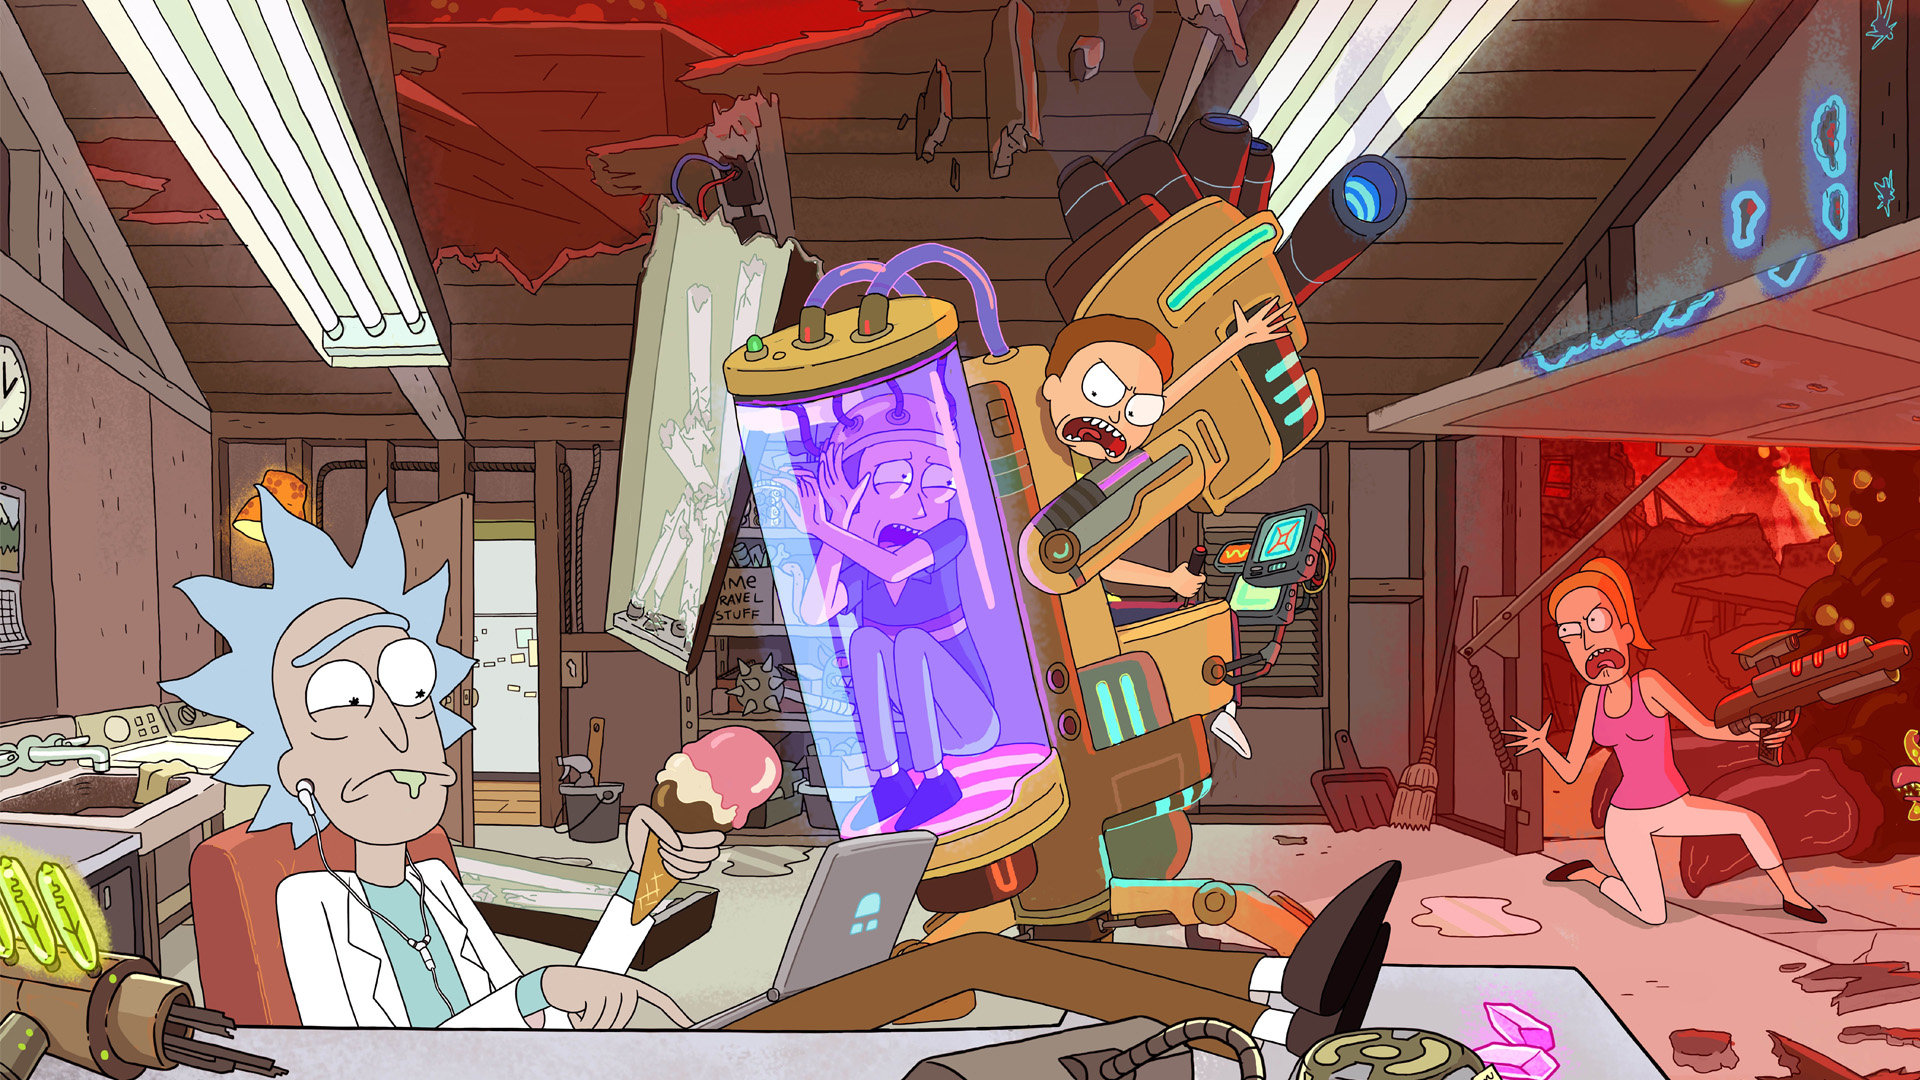 Rick And Morty wallpapers 1920x1080 Full HD  1080p  desktop backgrounds Free Rick And Morty high quality wallpaper ID 470582 for hd 1920x1080  computer